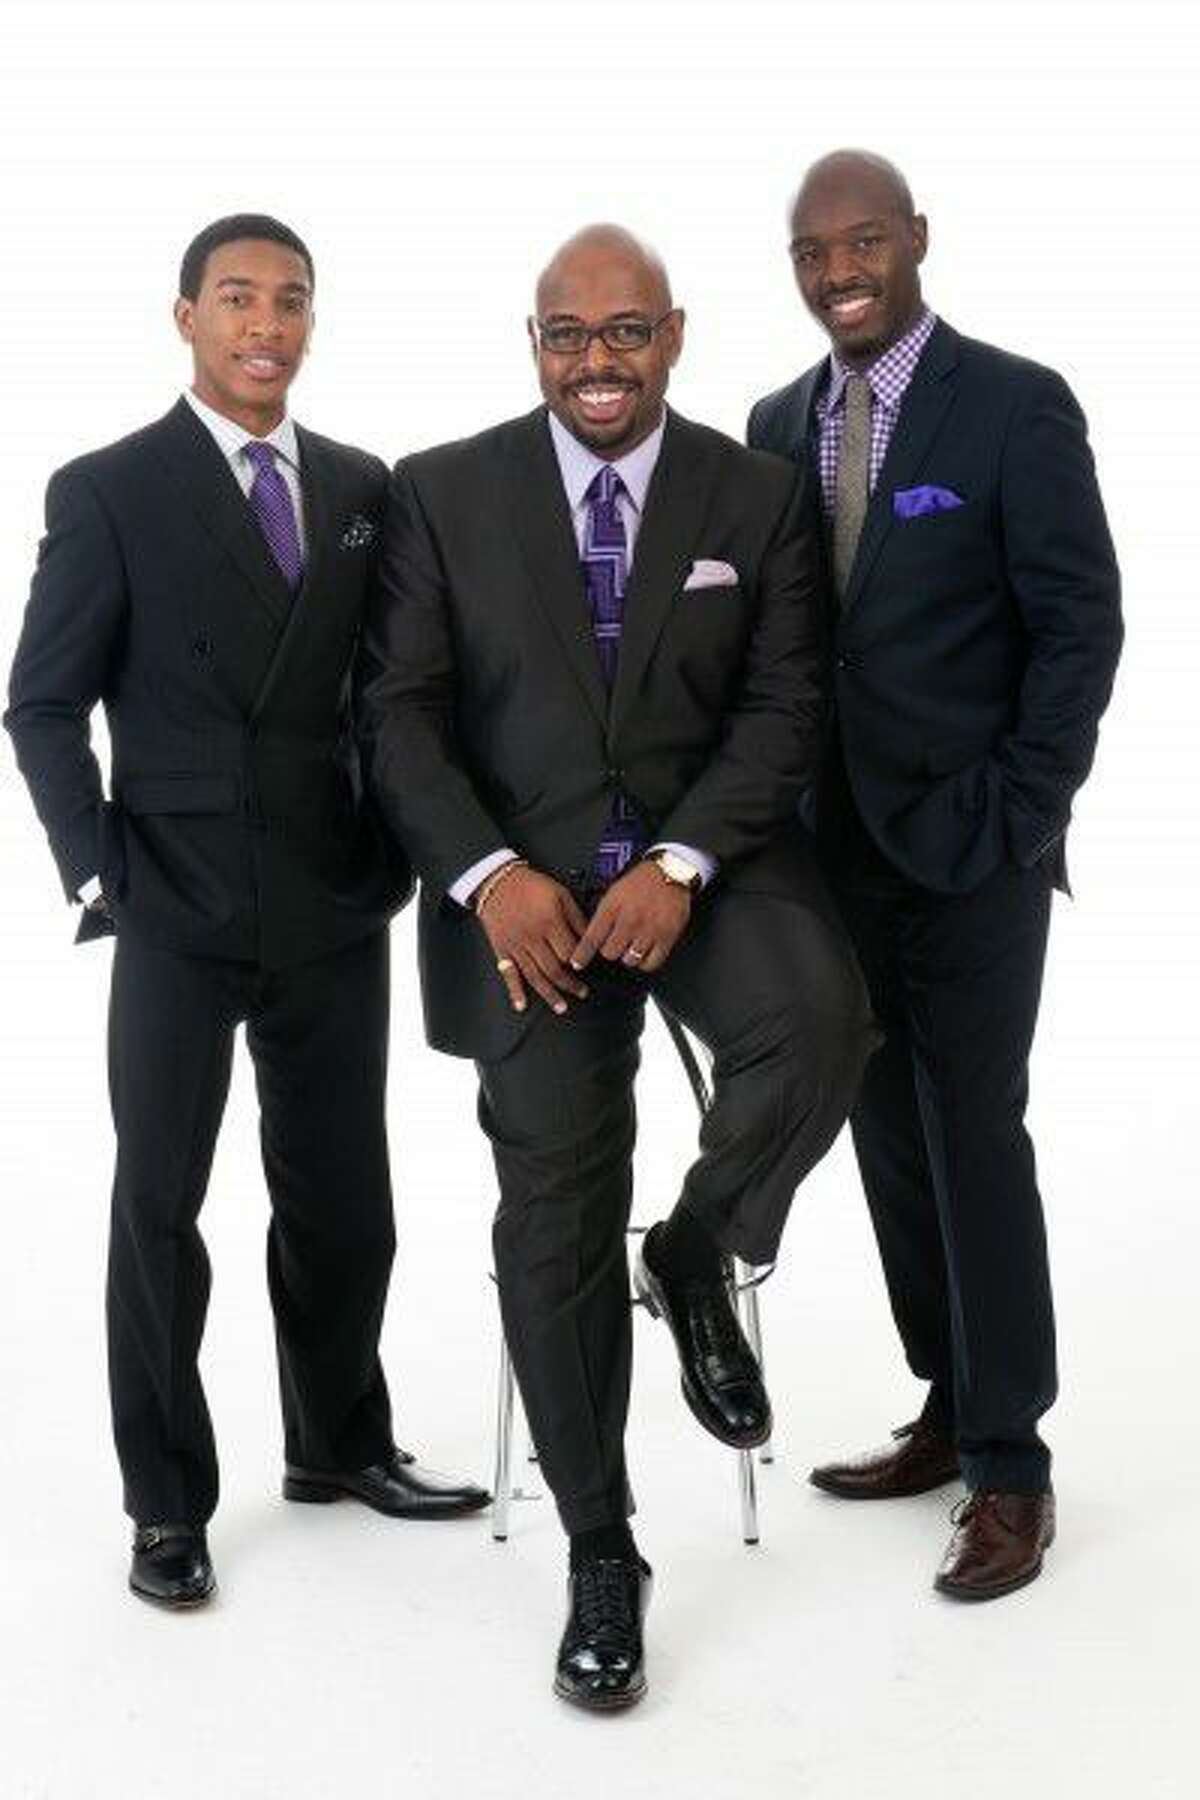 The Christian McBride Trio will perform with the Houston Chamber Choir on May 22.